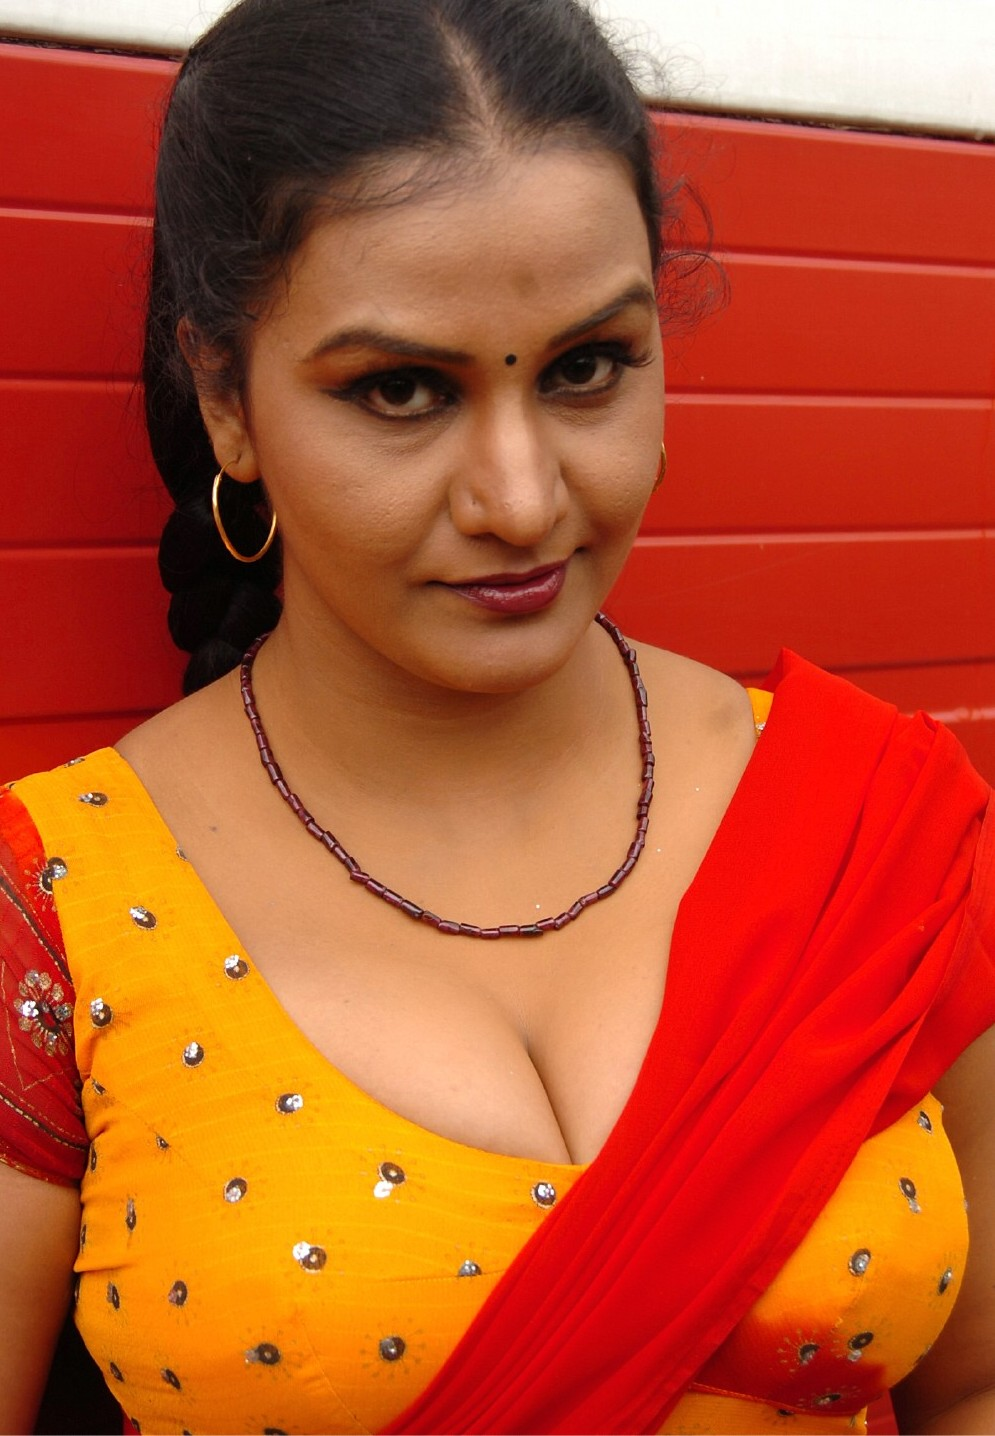 anty photos tamil sexy